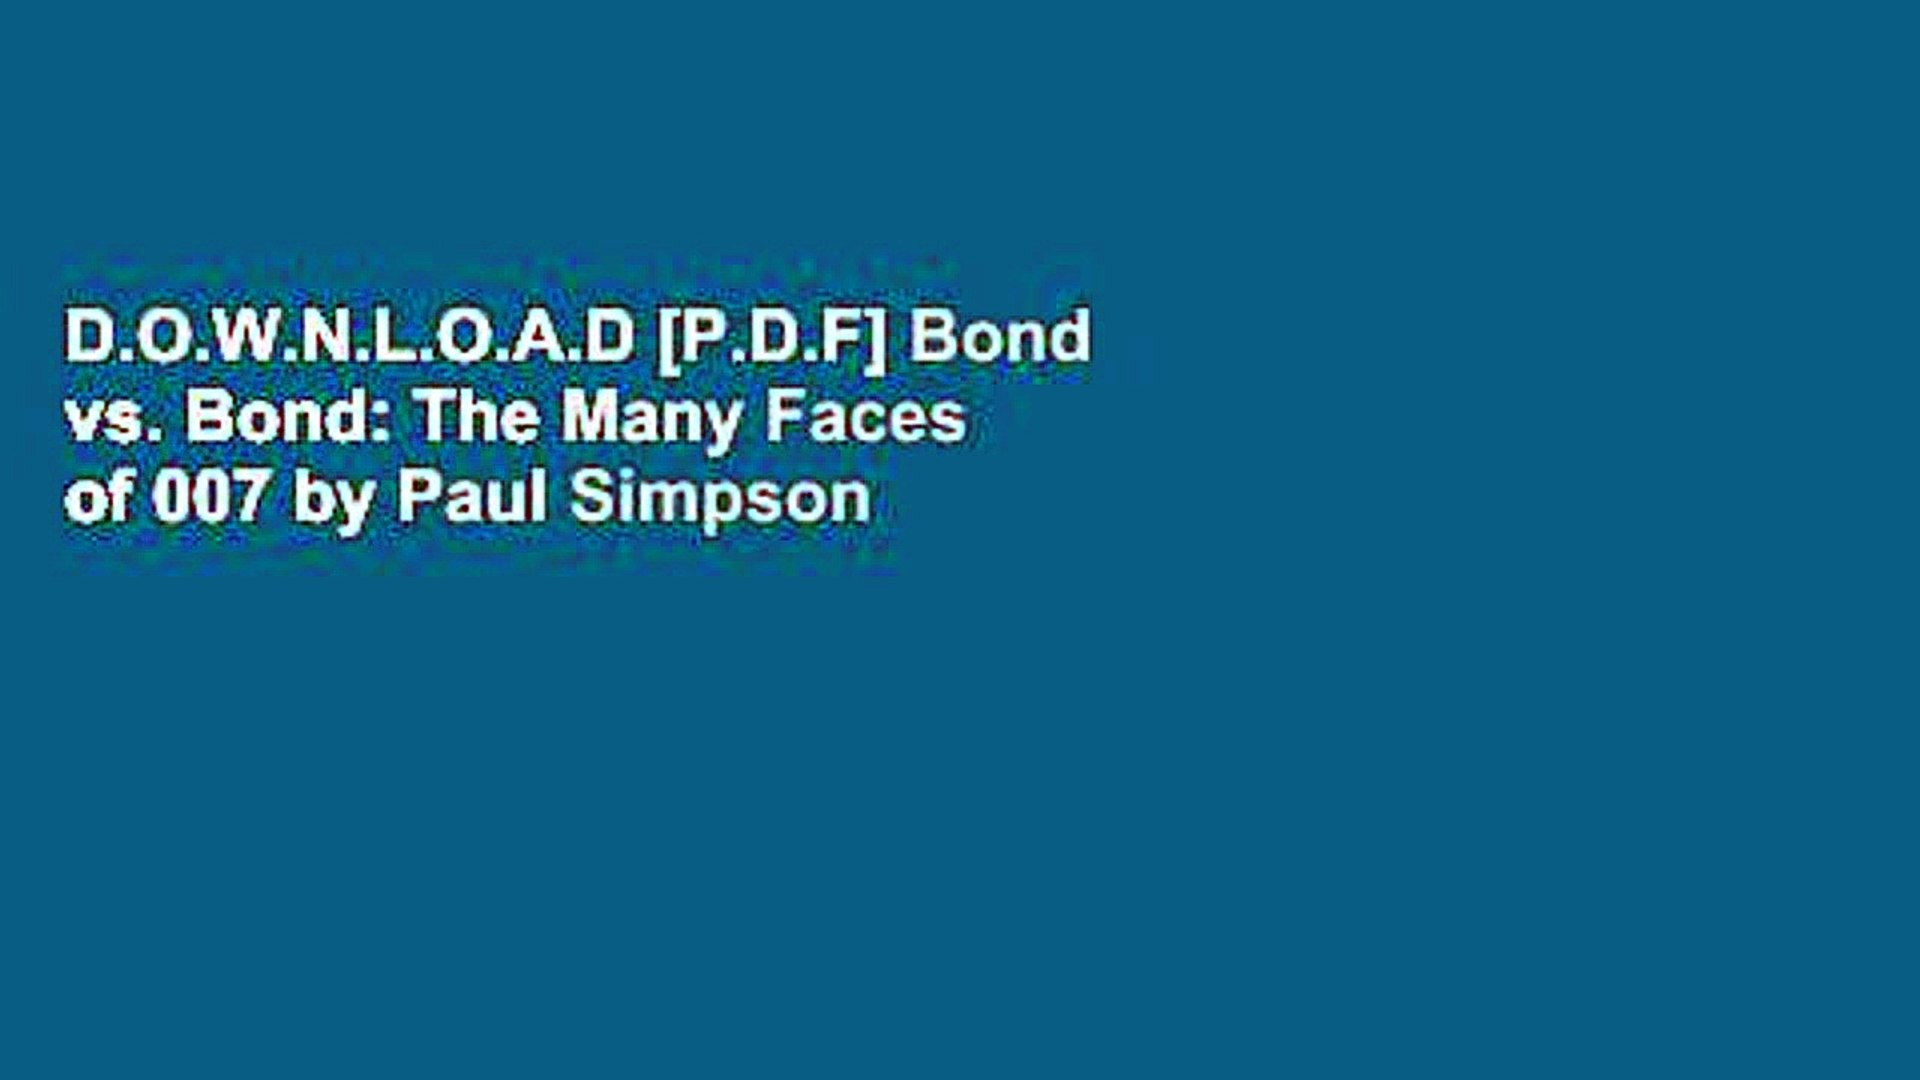 D.O.W.N.L.O.A.D [P.D.F] Bond vs. Bond: The Many Faces of 007 by Paul Simpson